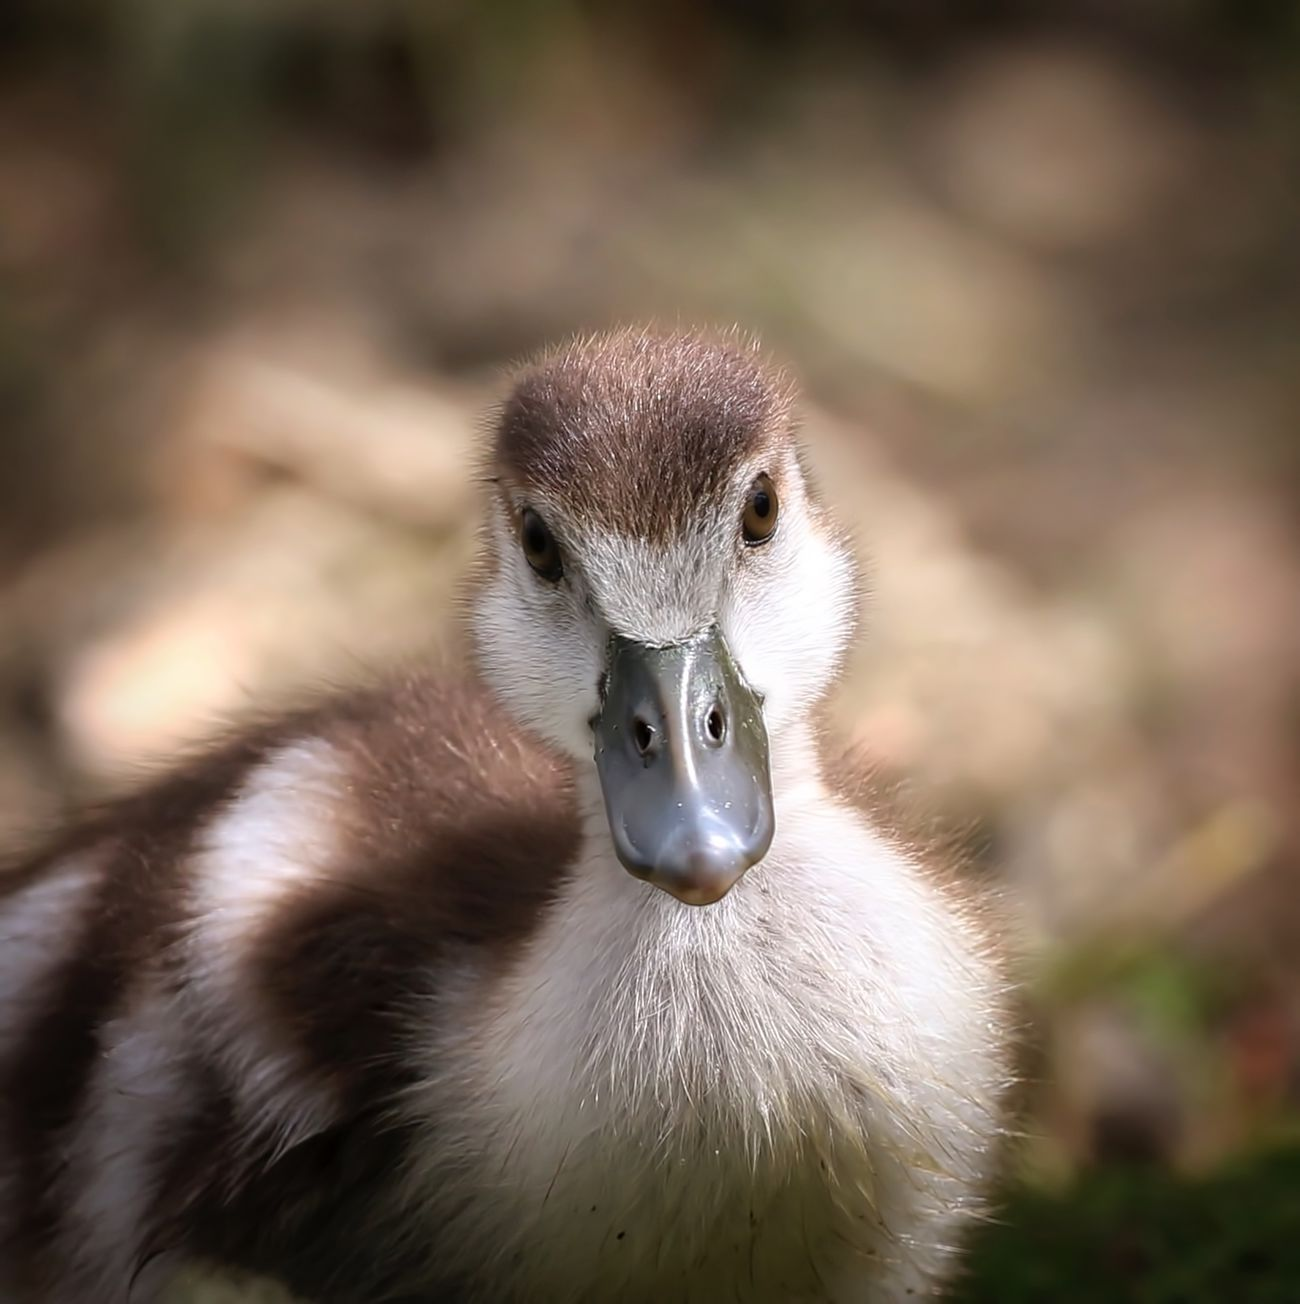 Egyptian Gosling Animal Themes Animals In The Wild Beak Bird Close-up Day Gosling Nature No People One Animal Outdoors Swan Young Animal Young Bird